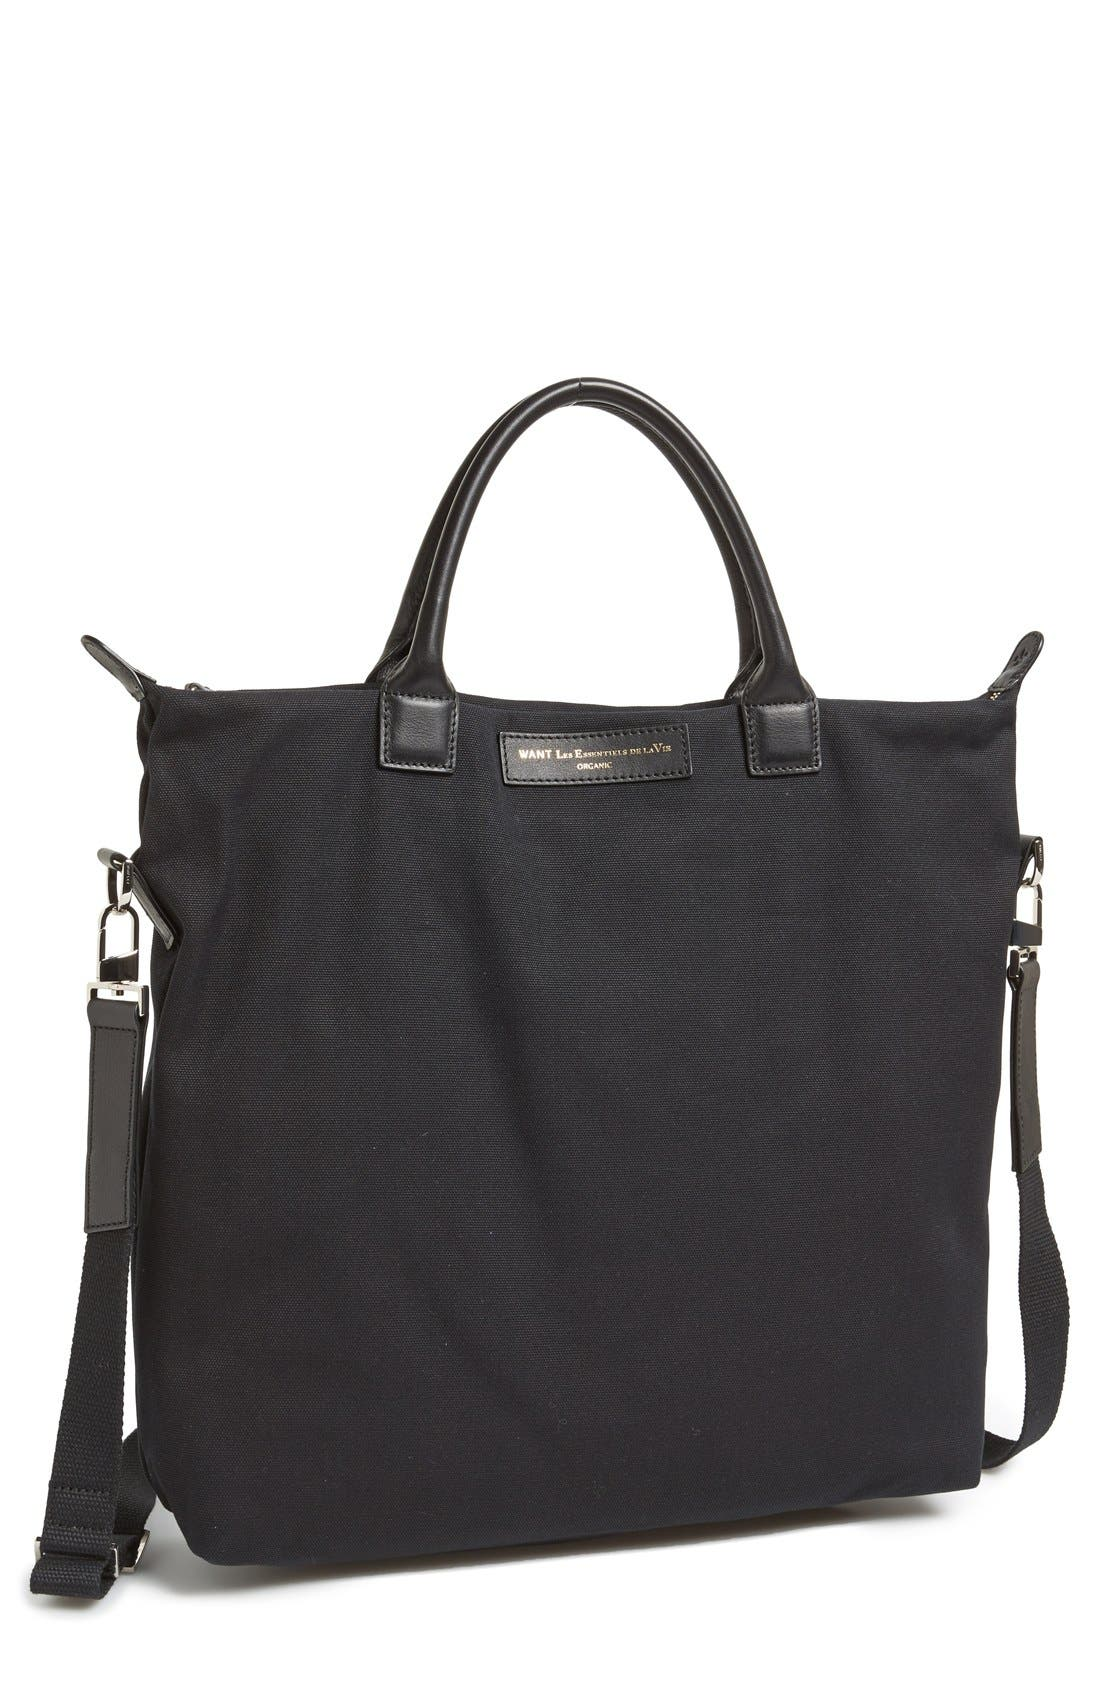 'O'Hare' Tote Bag,                         Main,                         color,